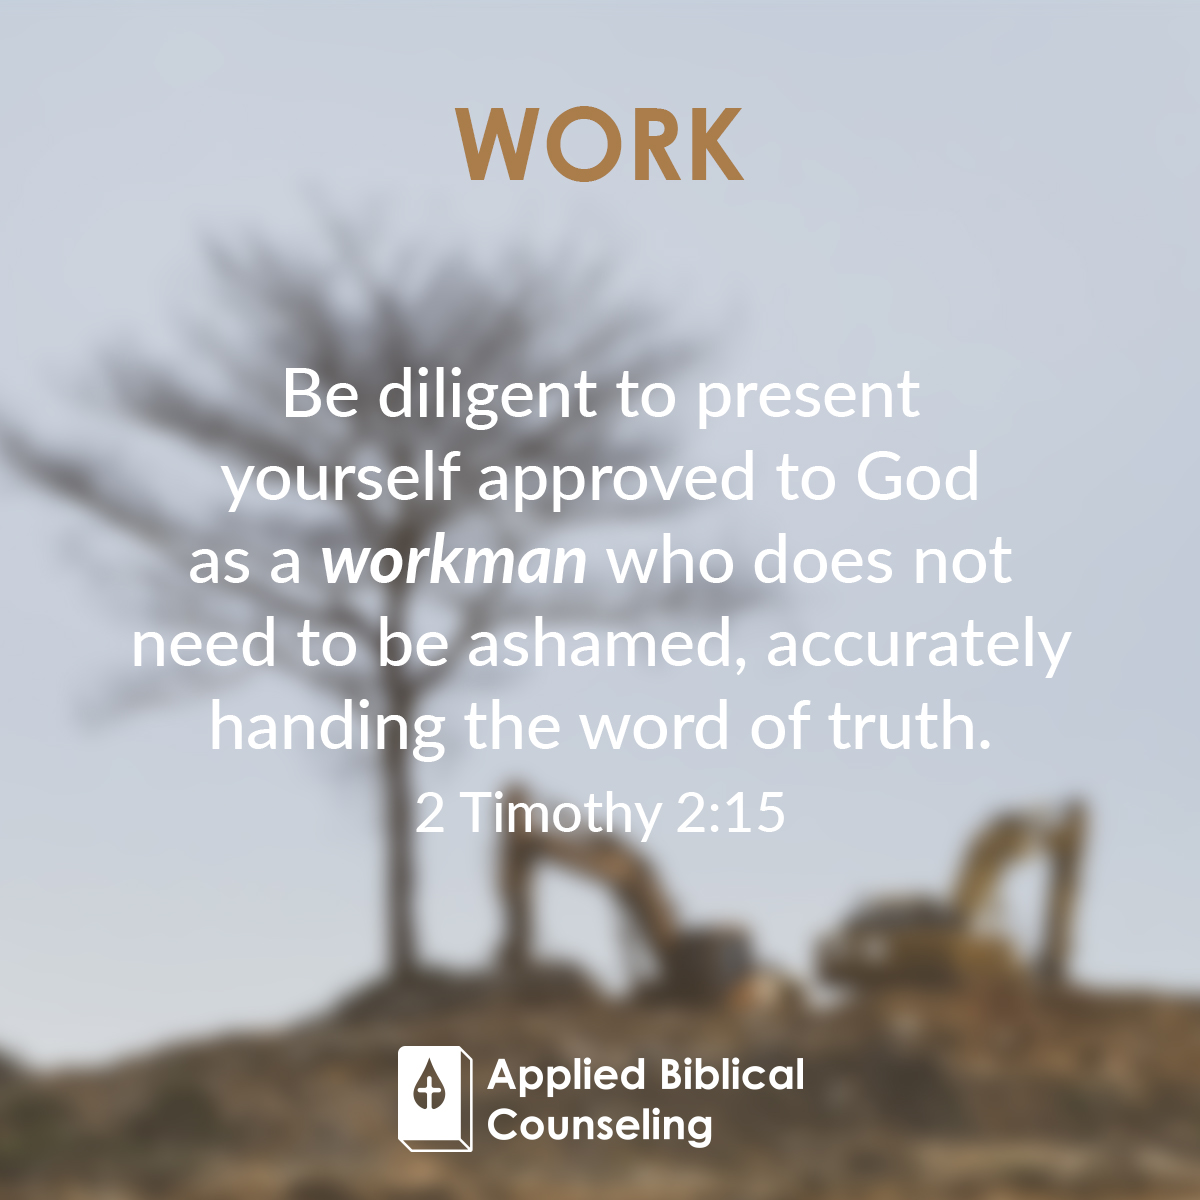 Applied Biblical Counseling Facebook w24 Work 3